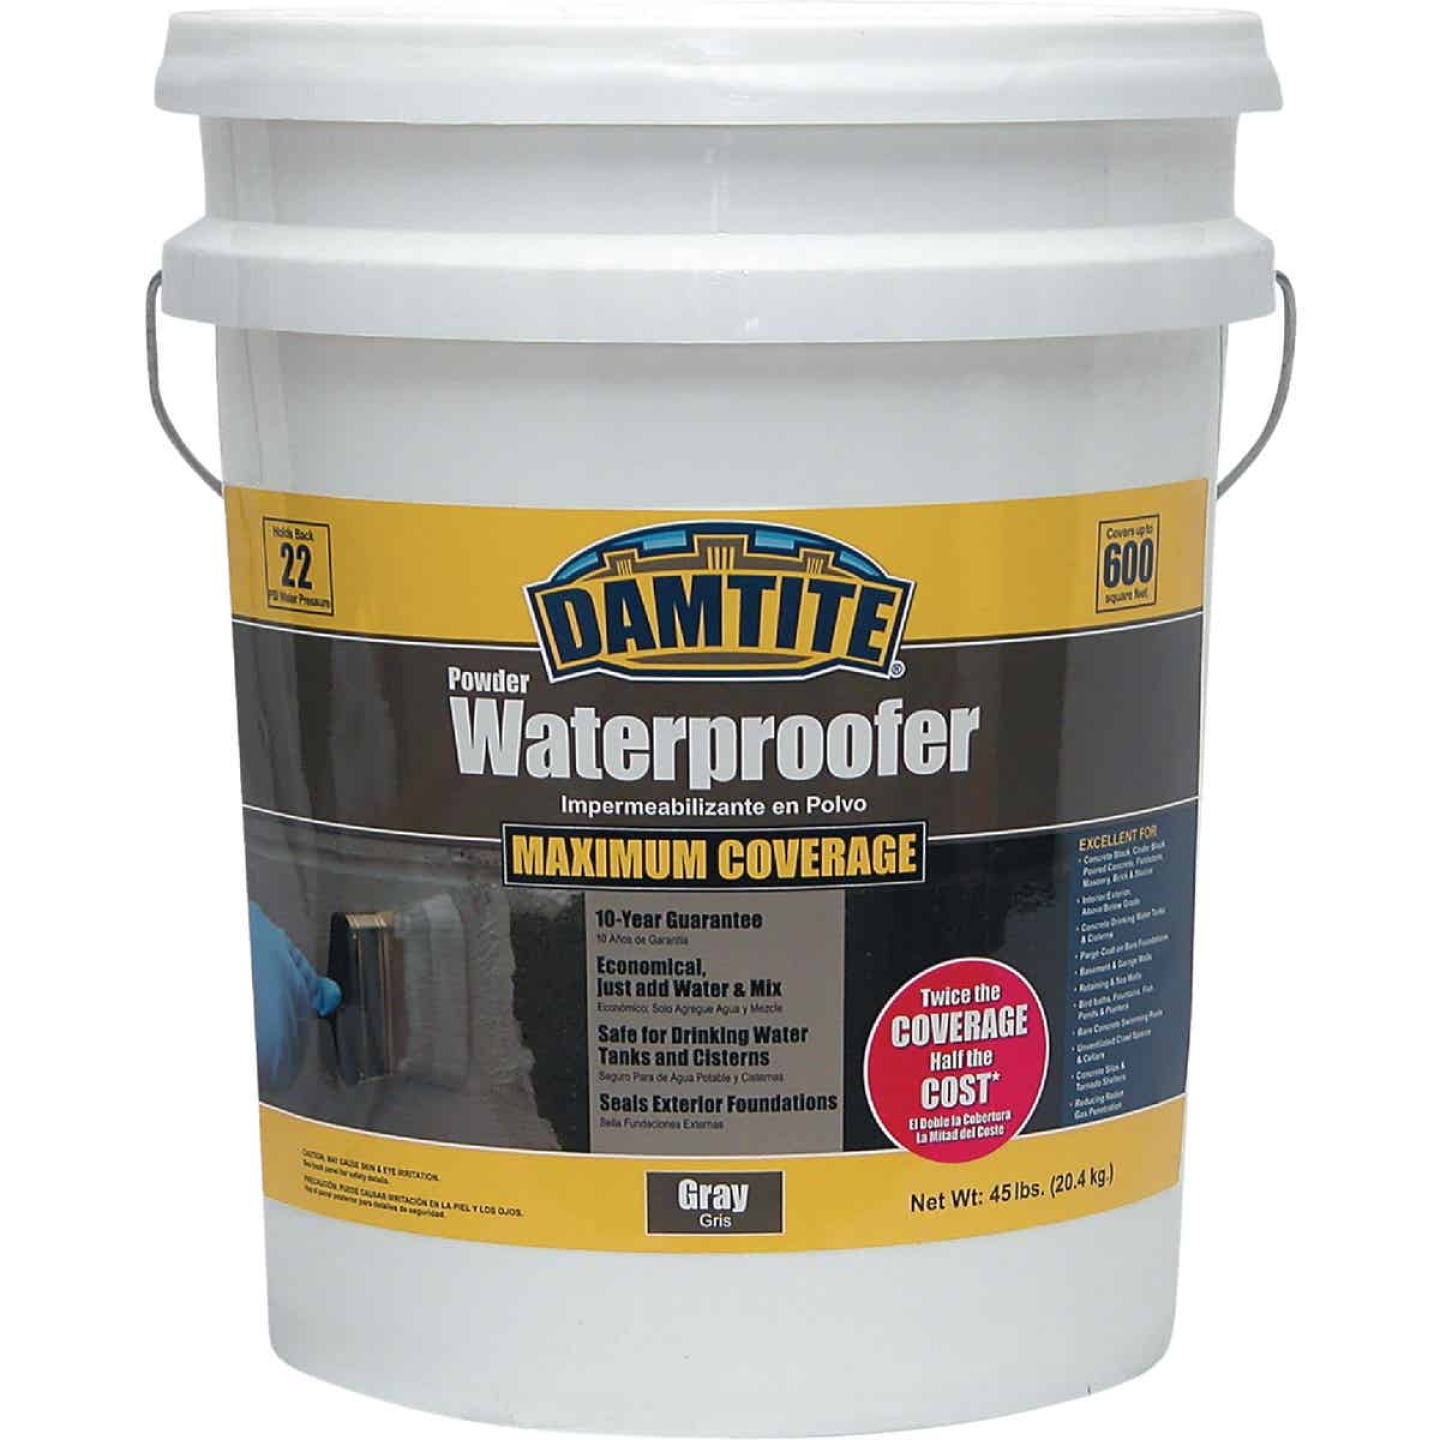 Damtite 45 Lb. Gray Powder Masonry Waterproofer Image 1